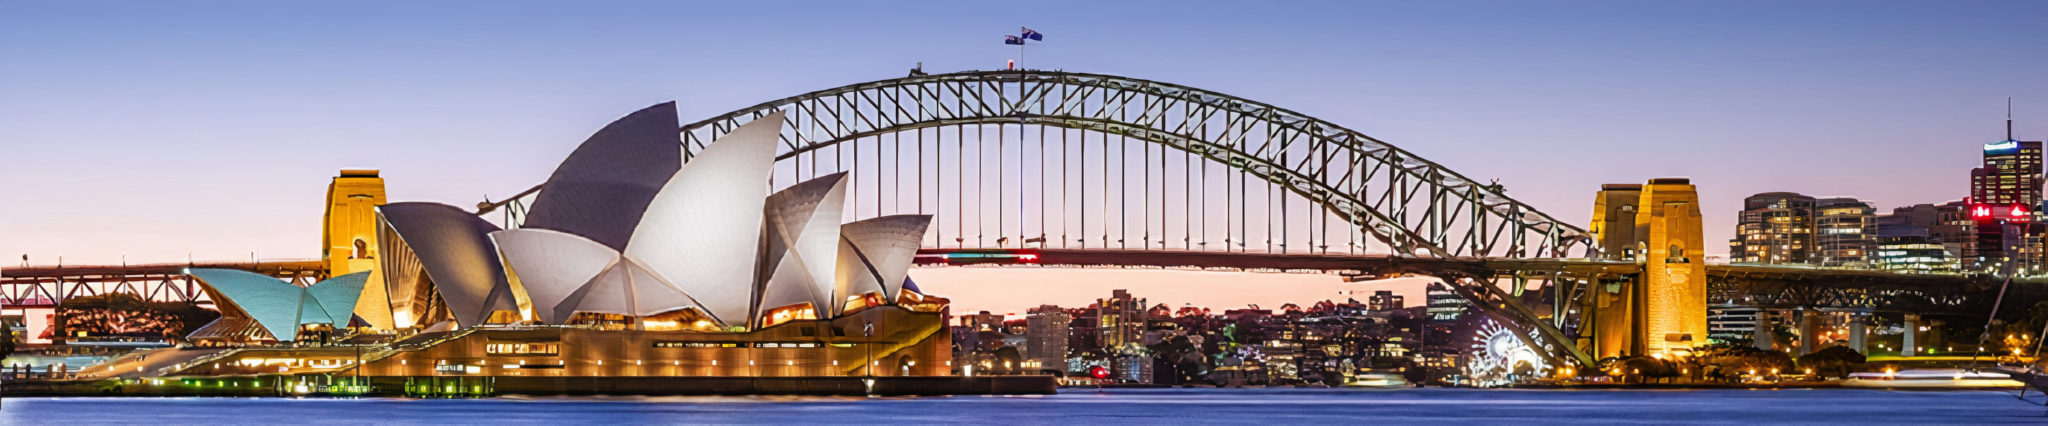 Joern Utzon's Sydney Opera House, and the Harbour Bridge, two of Sydney's most famous landmarks, taken at dusk. The Sydney Opera House is one of the most iconic buildings built in the 20th century (1973) and is UNESCO's world heritage. (Joern Utzon's